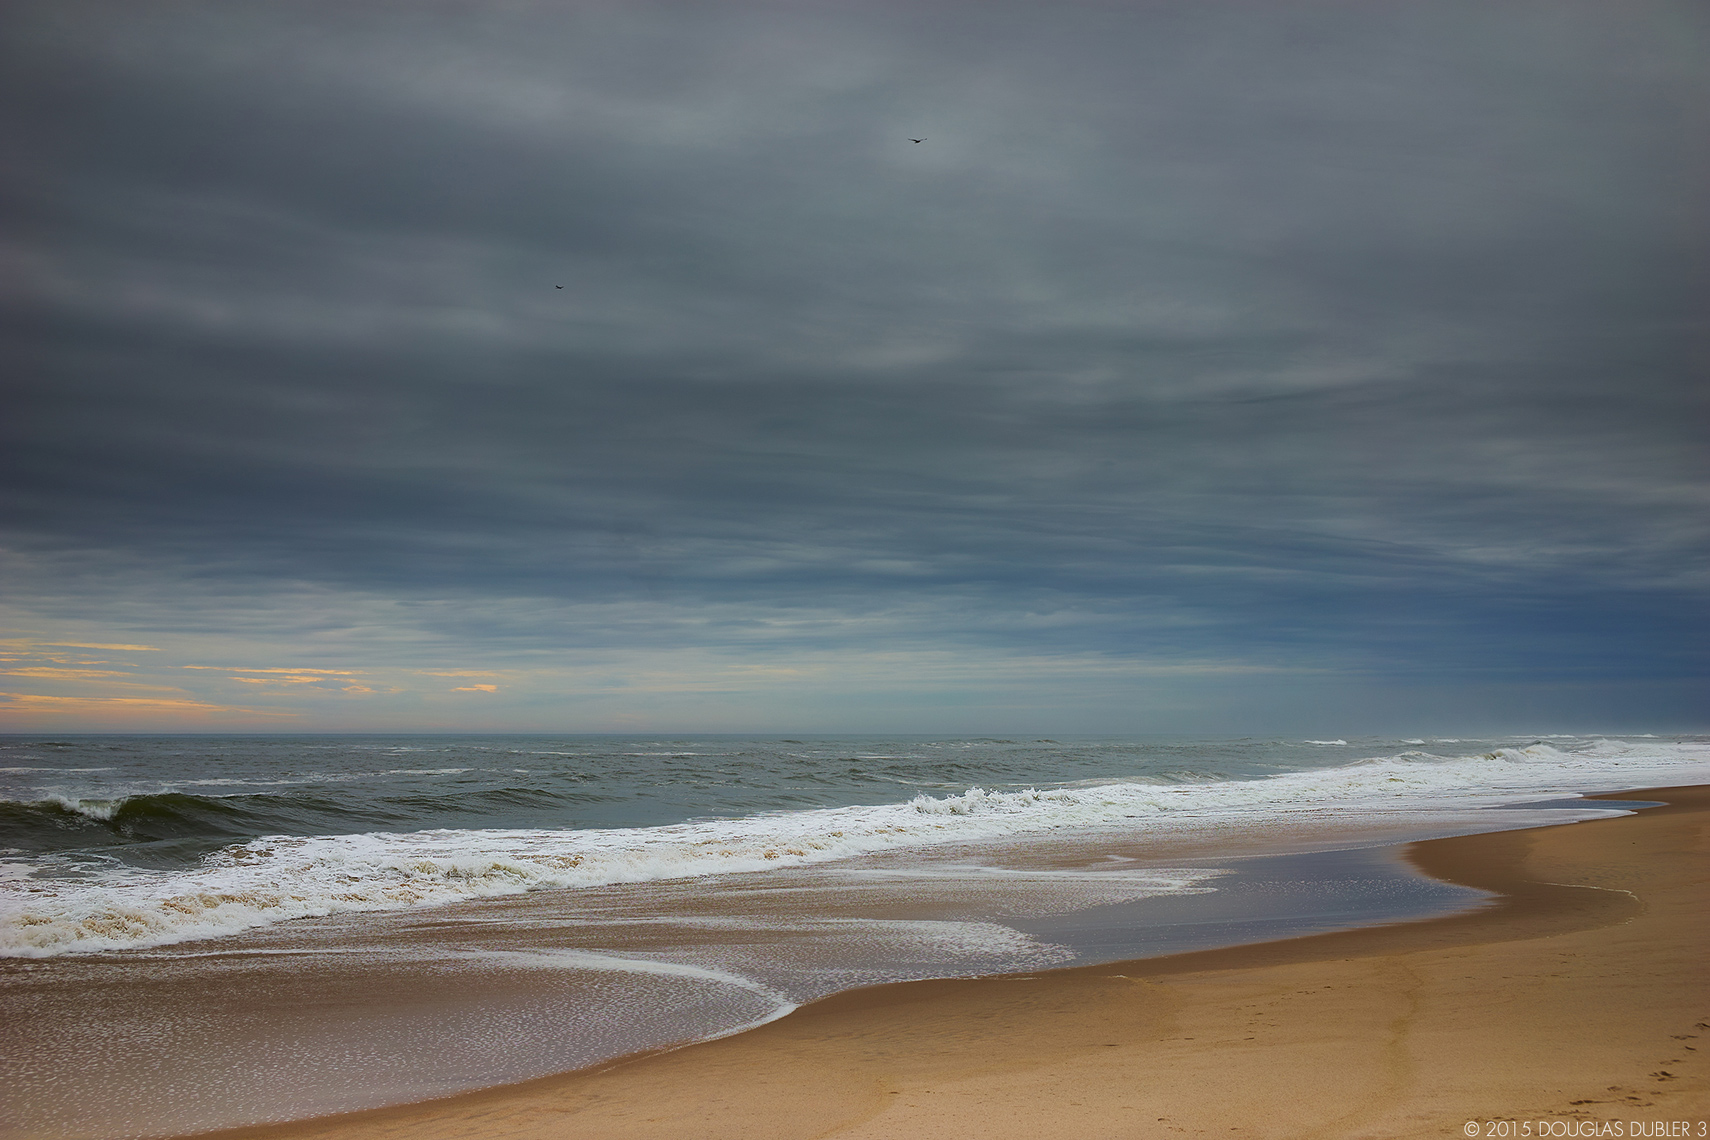 East_Hampton_Beach__3778_NX2_Sh_D_Flt_©612k